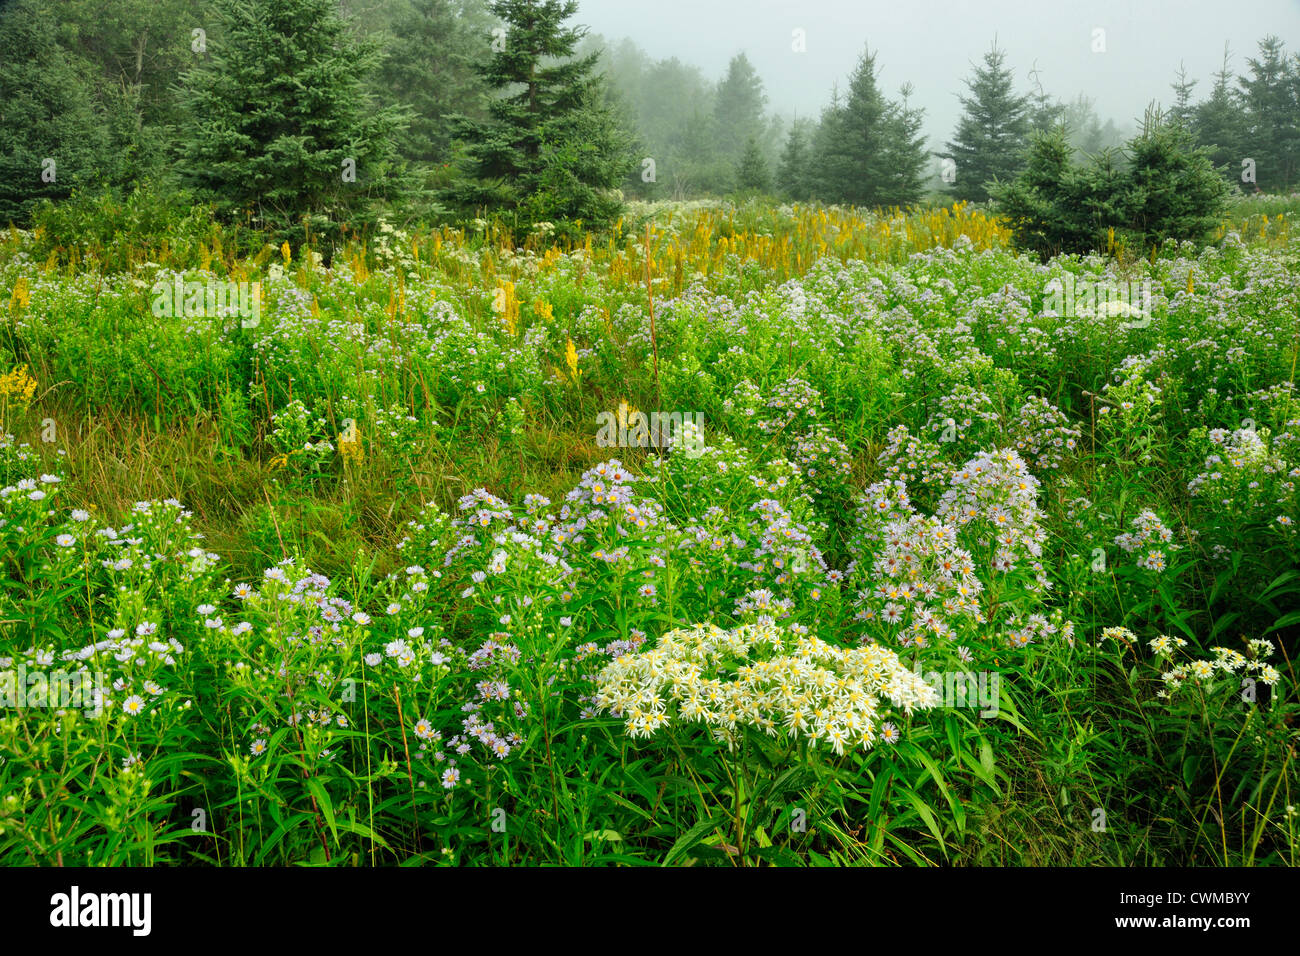 Asters and goldenrod in meadow, Greater Sudbury, Ontario, Canada - Stock Image